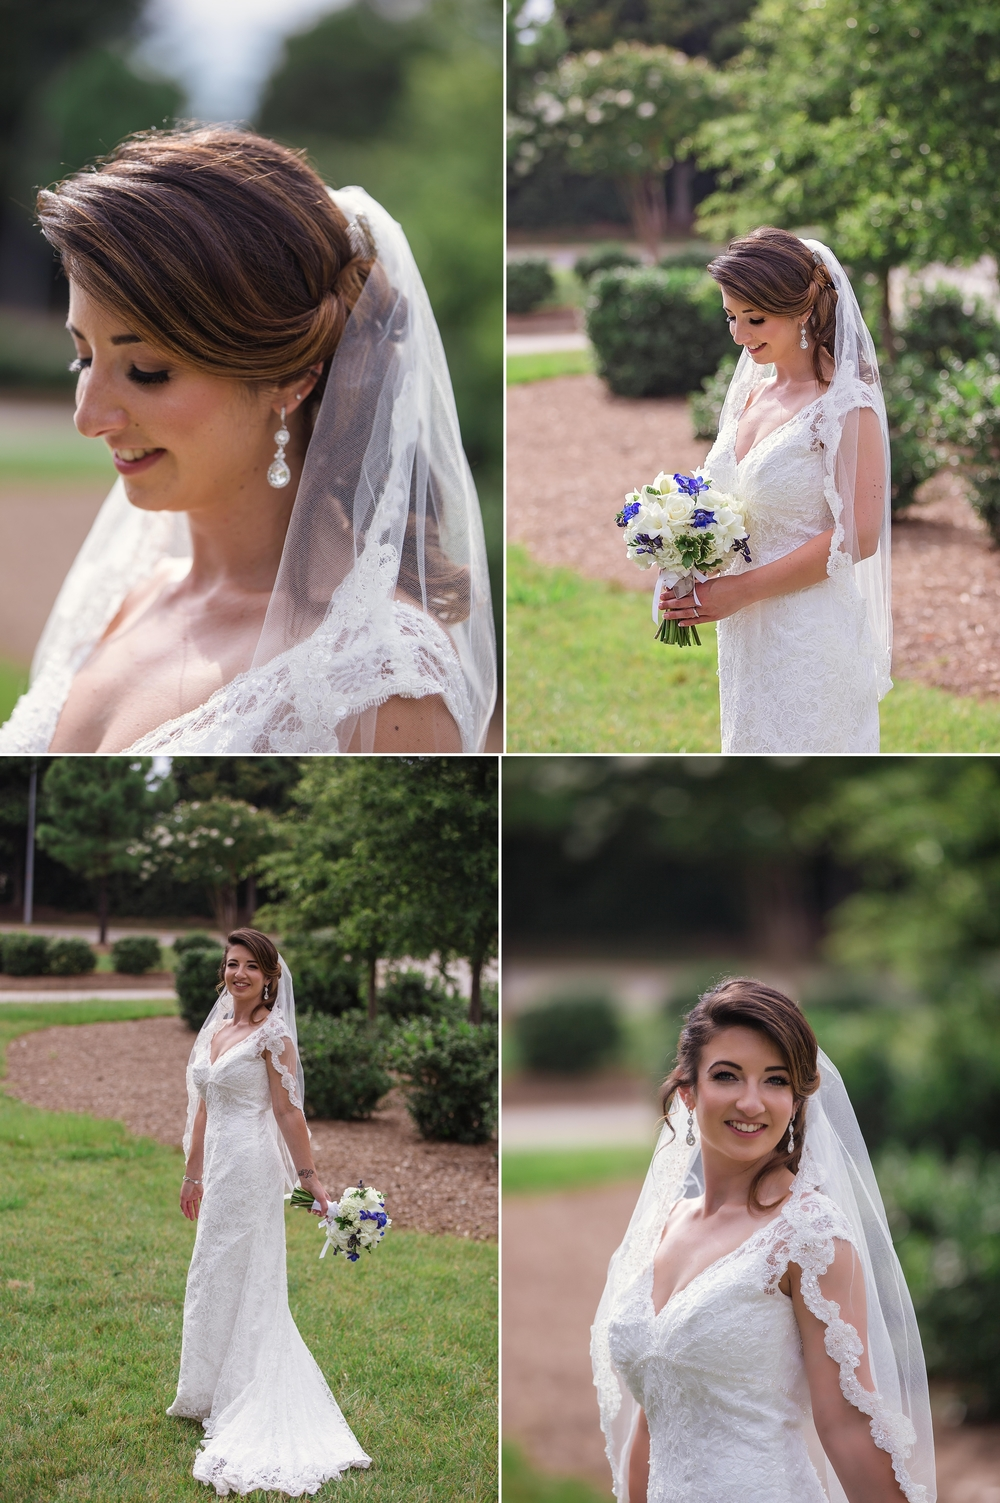 Wedding Photography in Cary, North Carolina